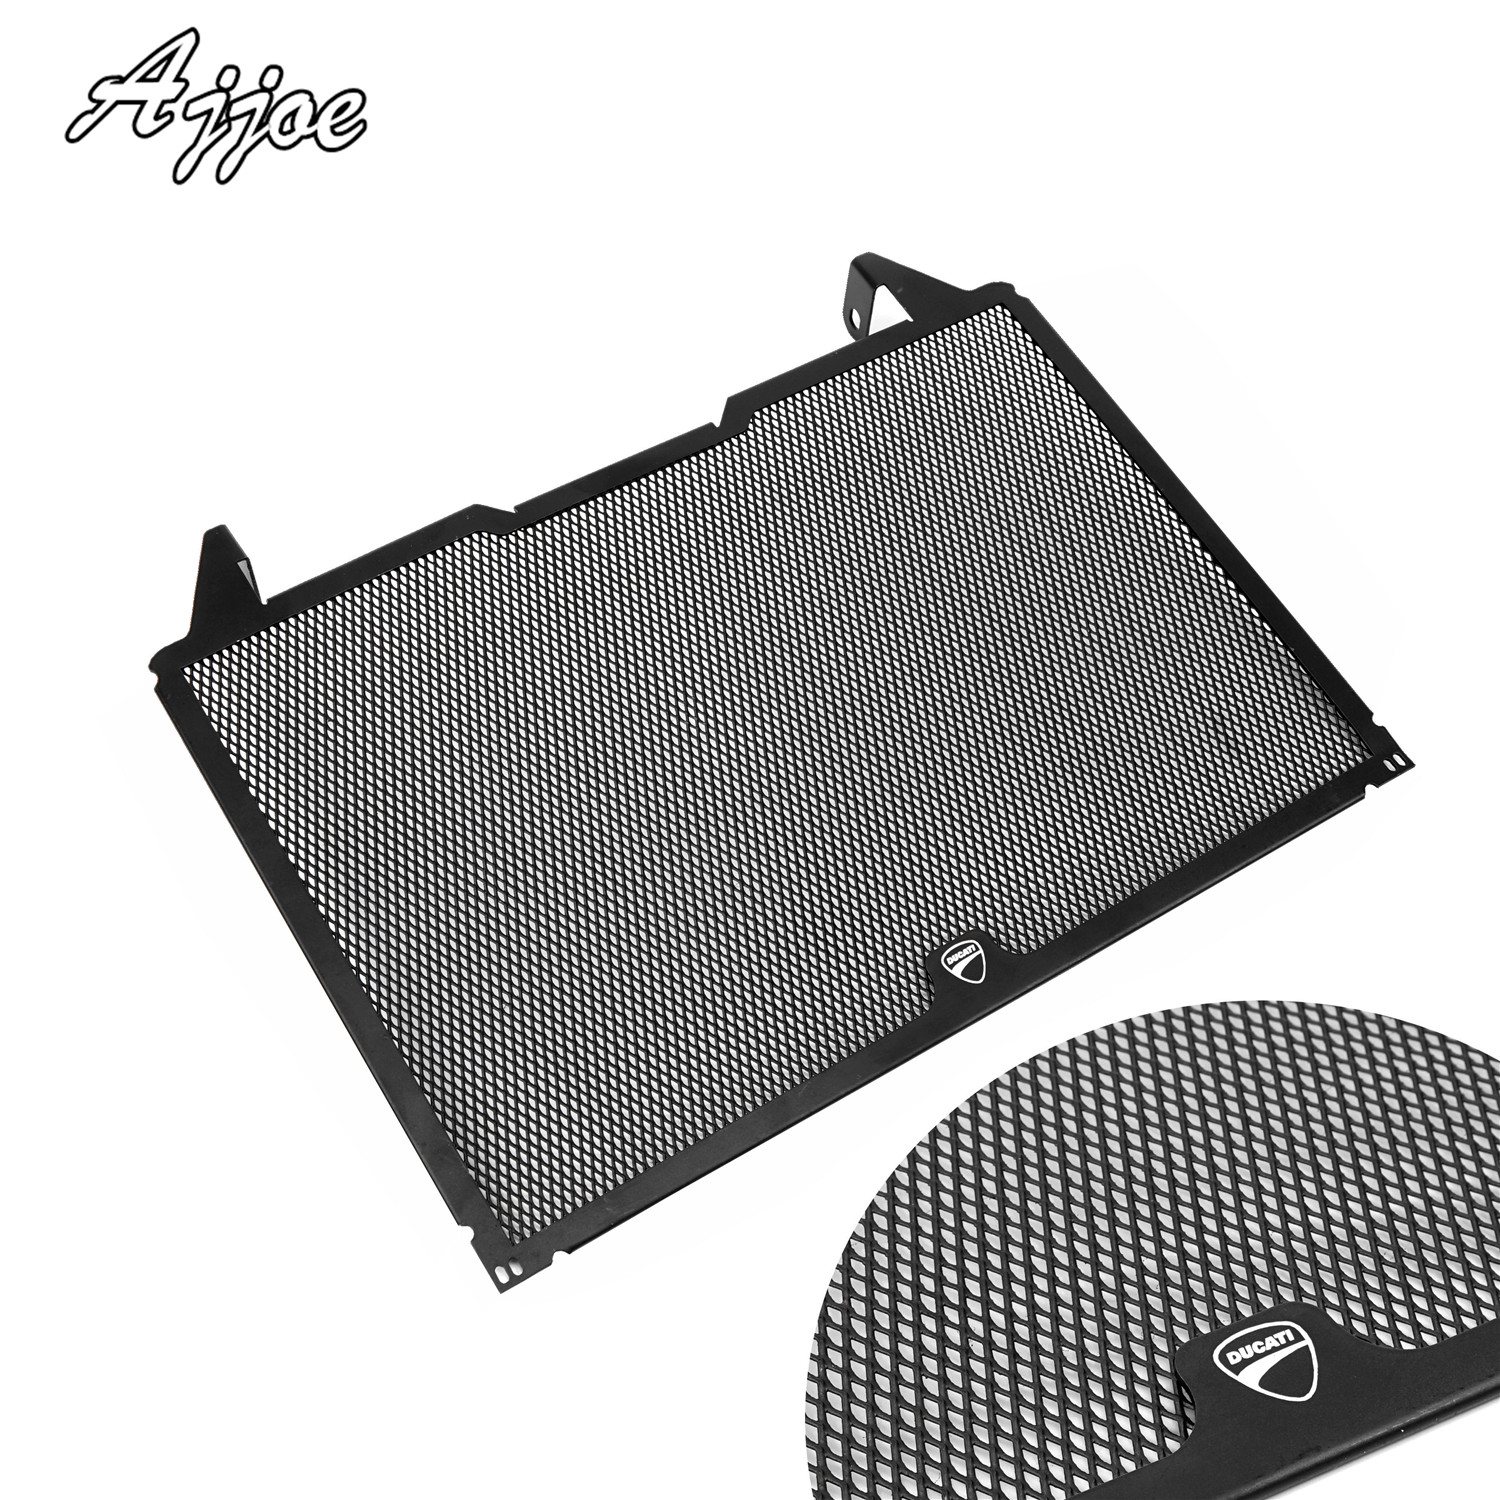 Motorcycle Radiator Grille Guard Protector Cover For Ducati Multistrada 950 MTS950 2017 2018 2019